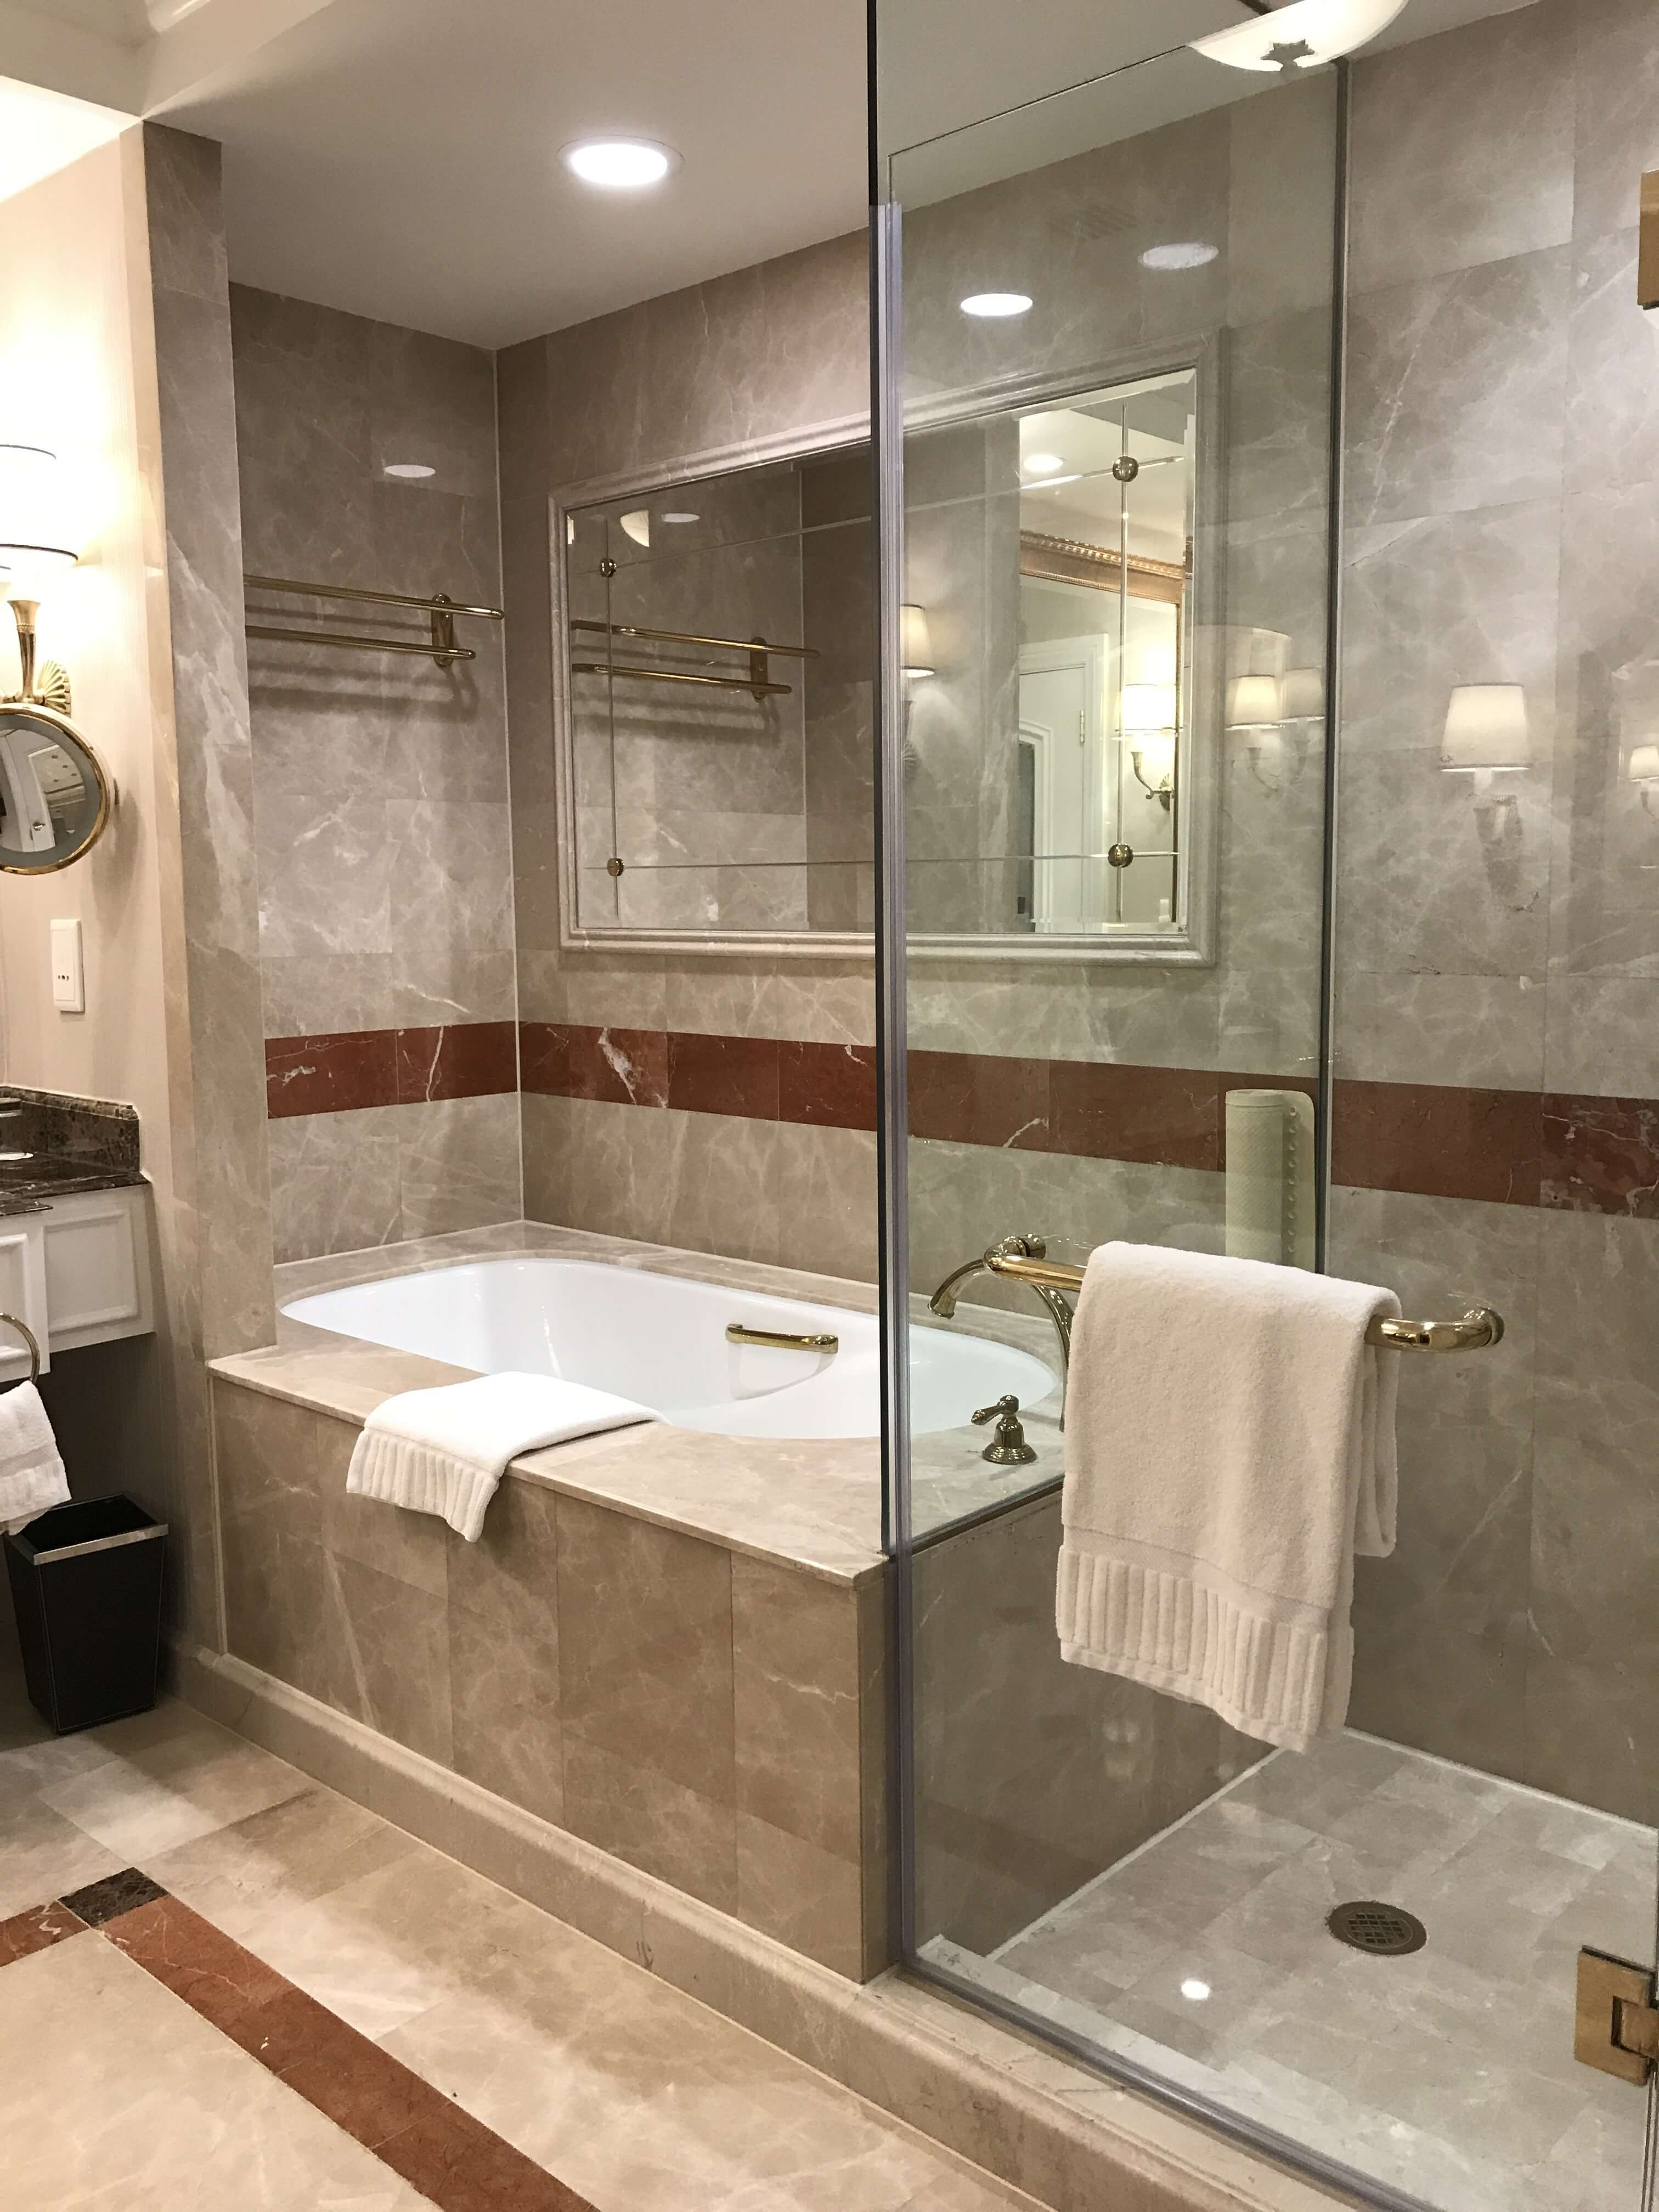 HyCOMB's stone honeycomb panels used as interior bathroom cladding at the Venetian Macao Hotel & Casino